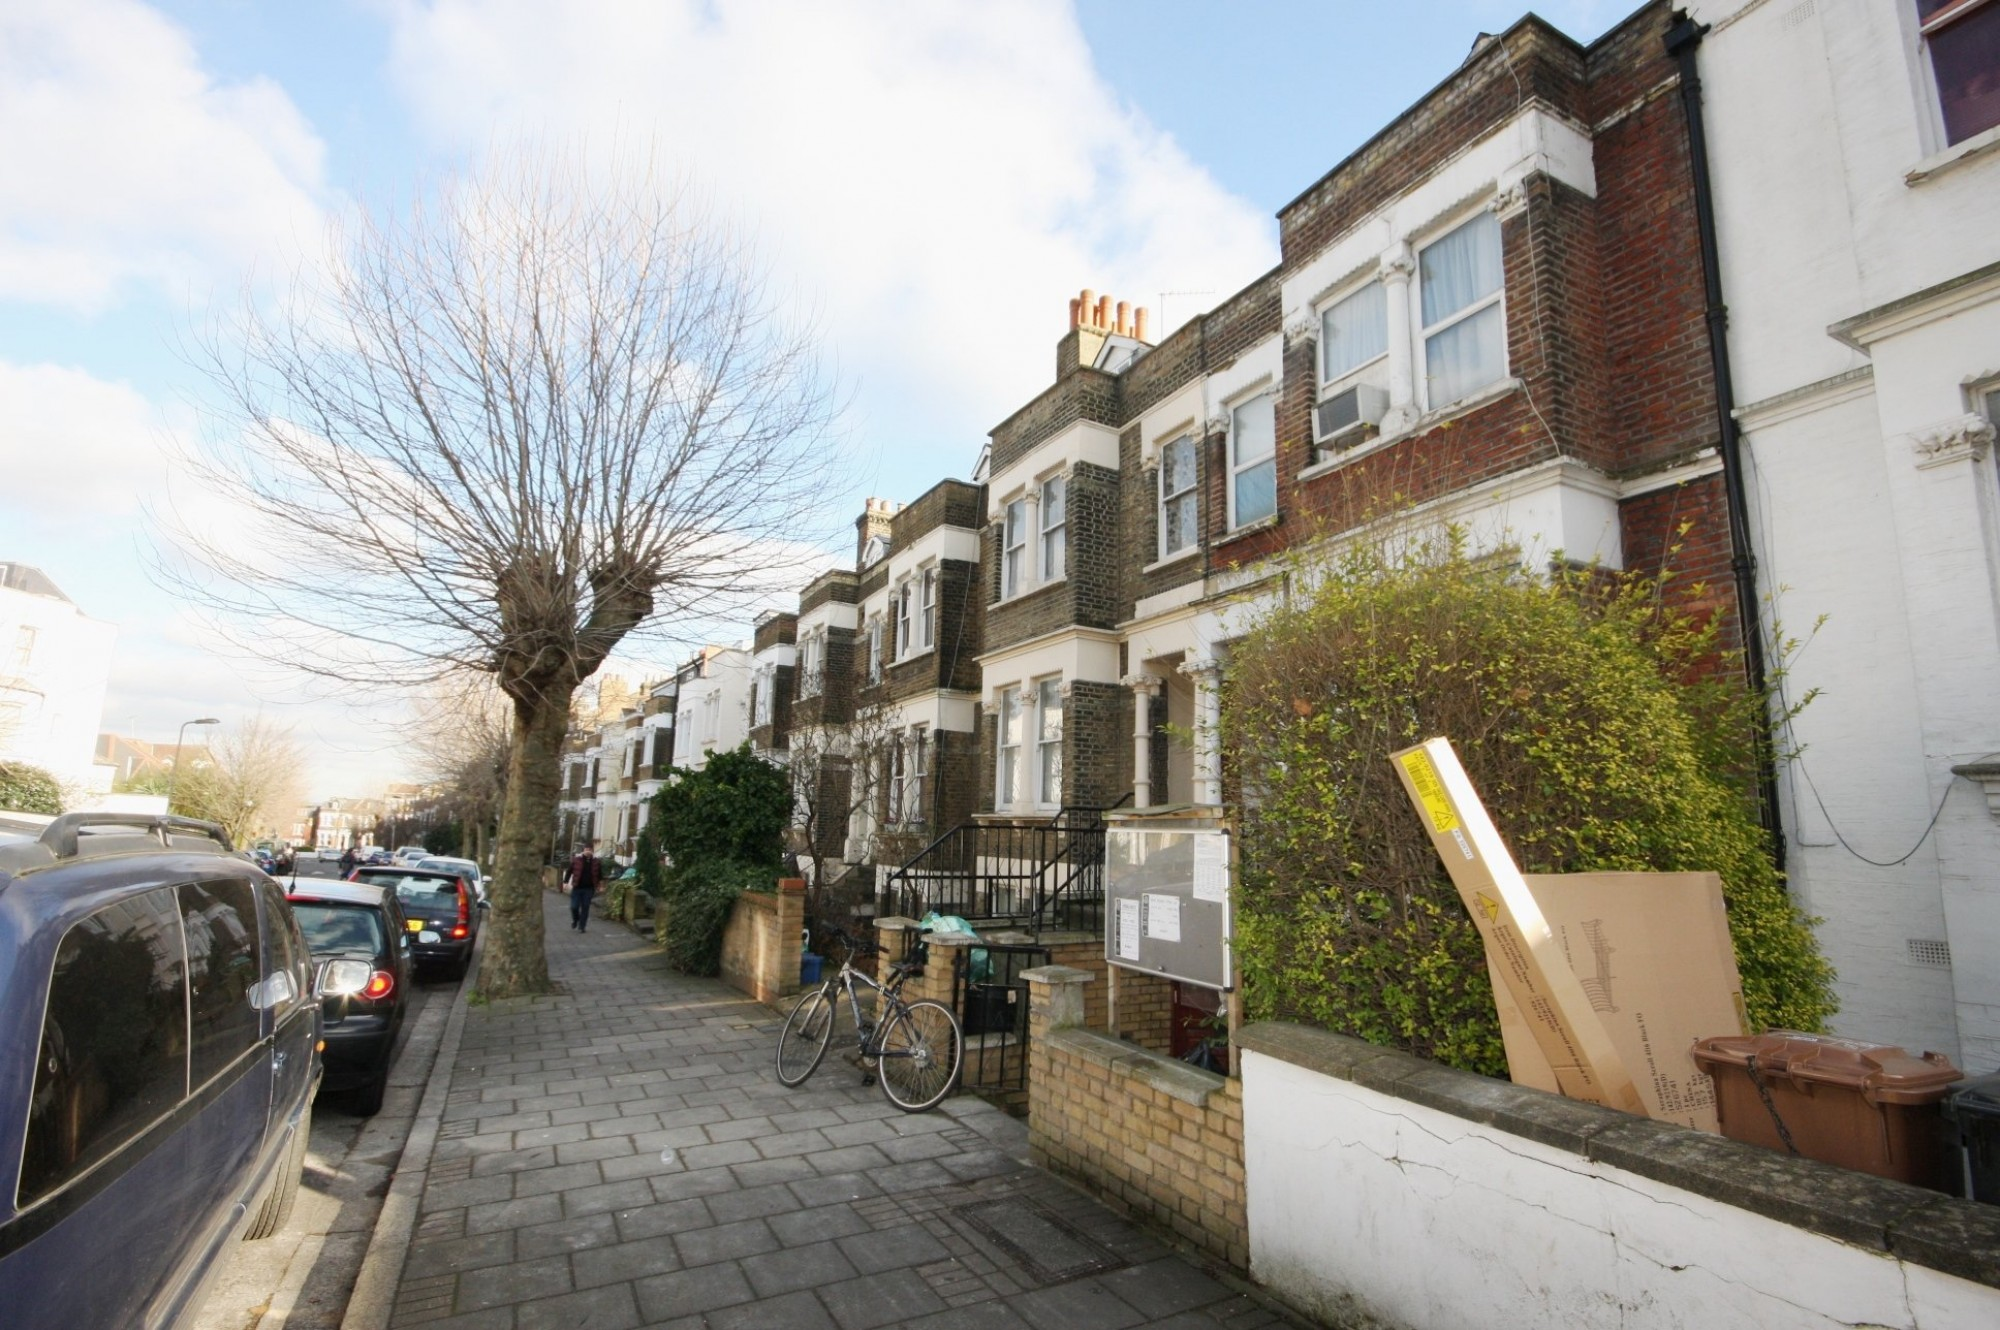 Images for Castlewood Road, London EAID:931013c273837aec744cf2e7889cb460 BID:3